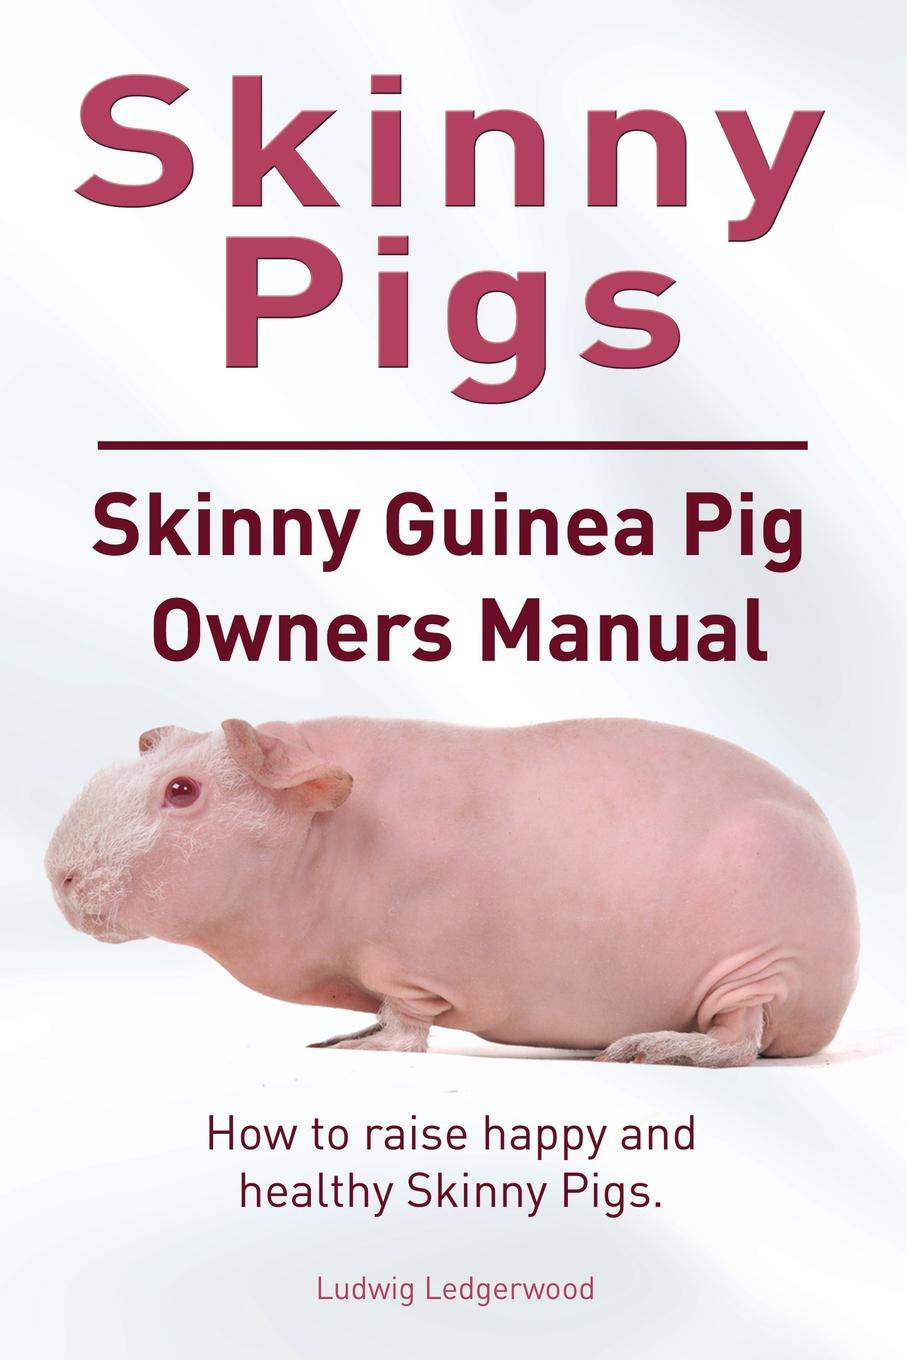 Ludwig Ledgerwood Skinny Pig. Skinny Guinea Pigs Owners Manual. How to raise happy and healthy Skinny Pigs.